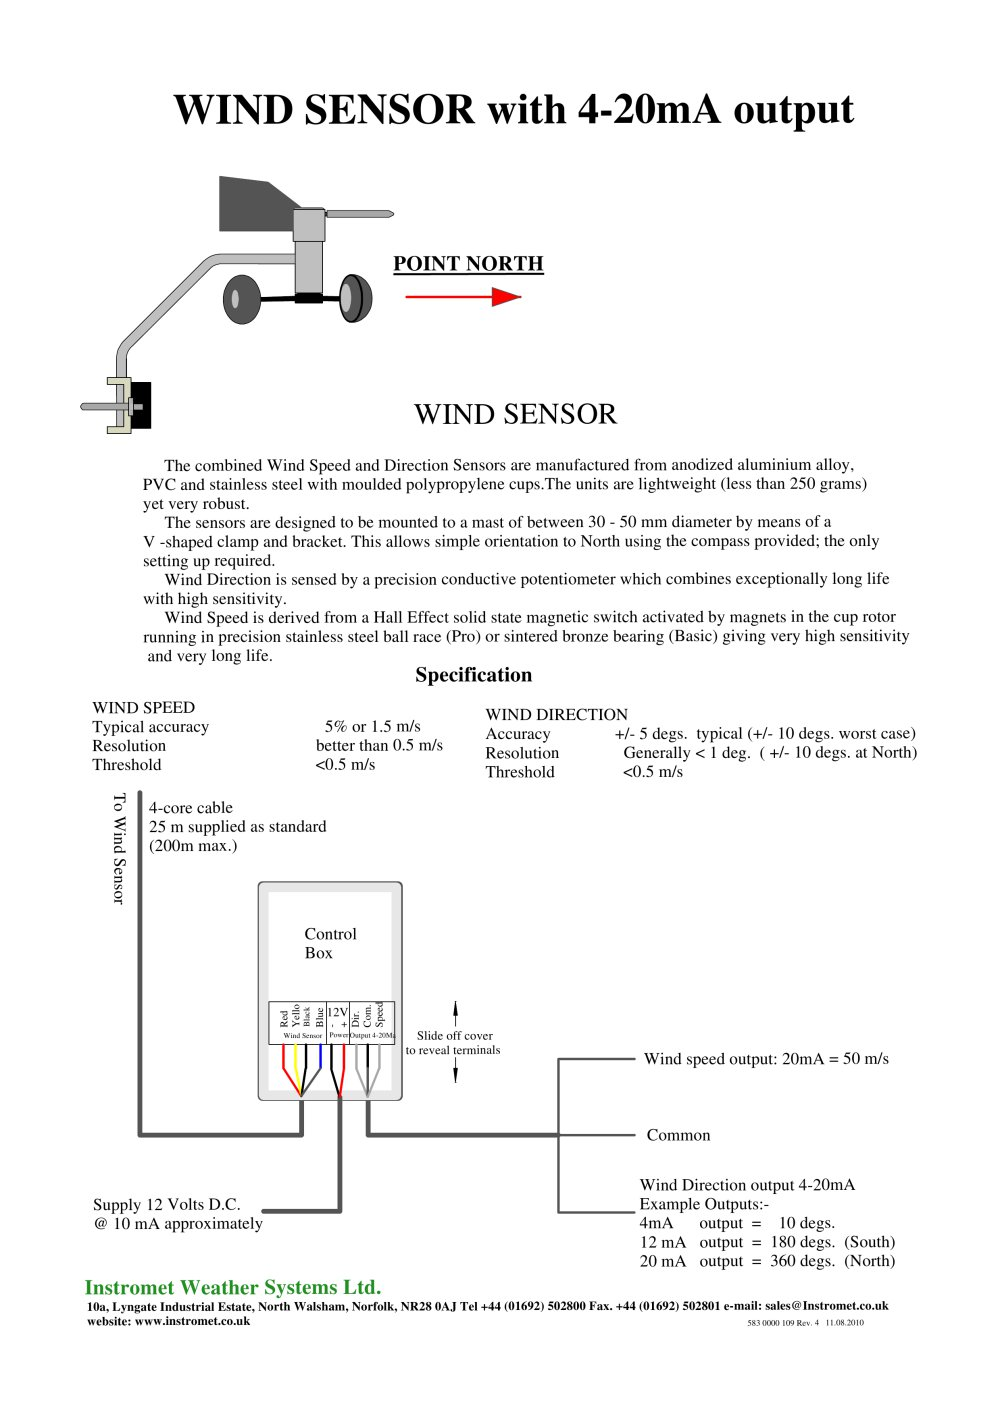 WIND SENSOR with 4-20mA output - 1 / 1 Pages